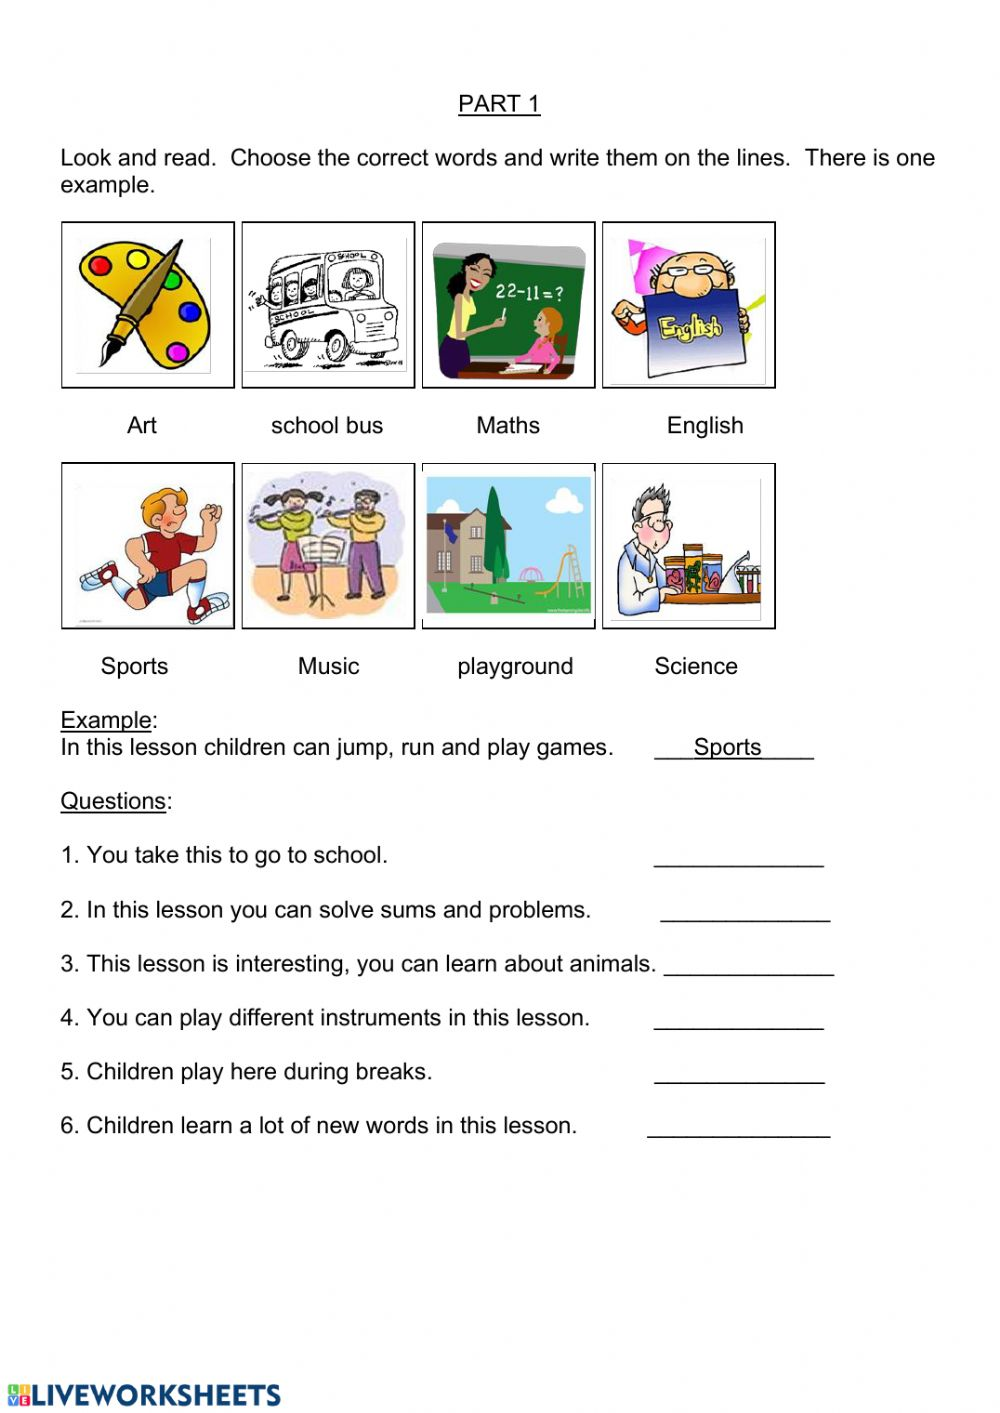 hight resolution of YLE - MOVERS - Parts 1 \u0026 2 worksheet